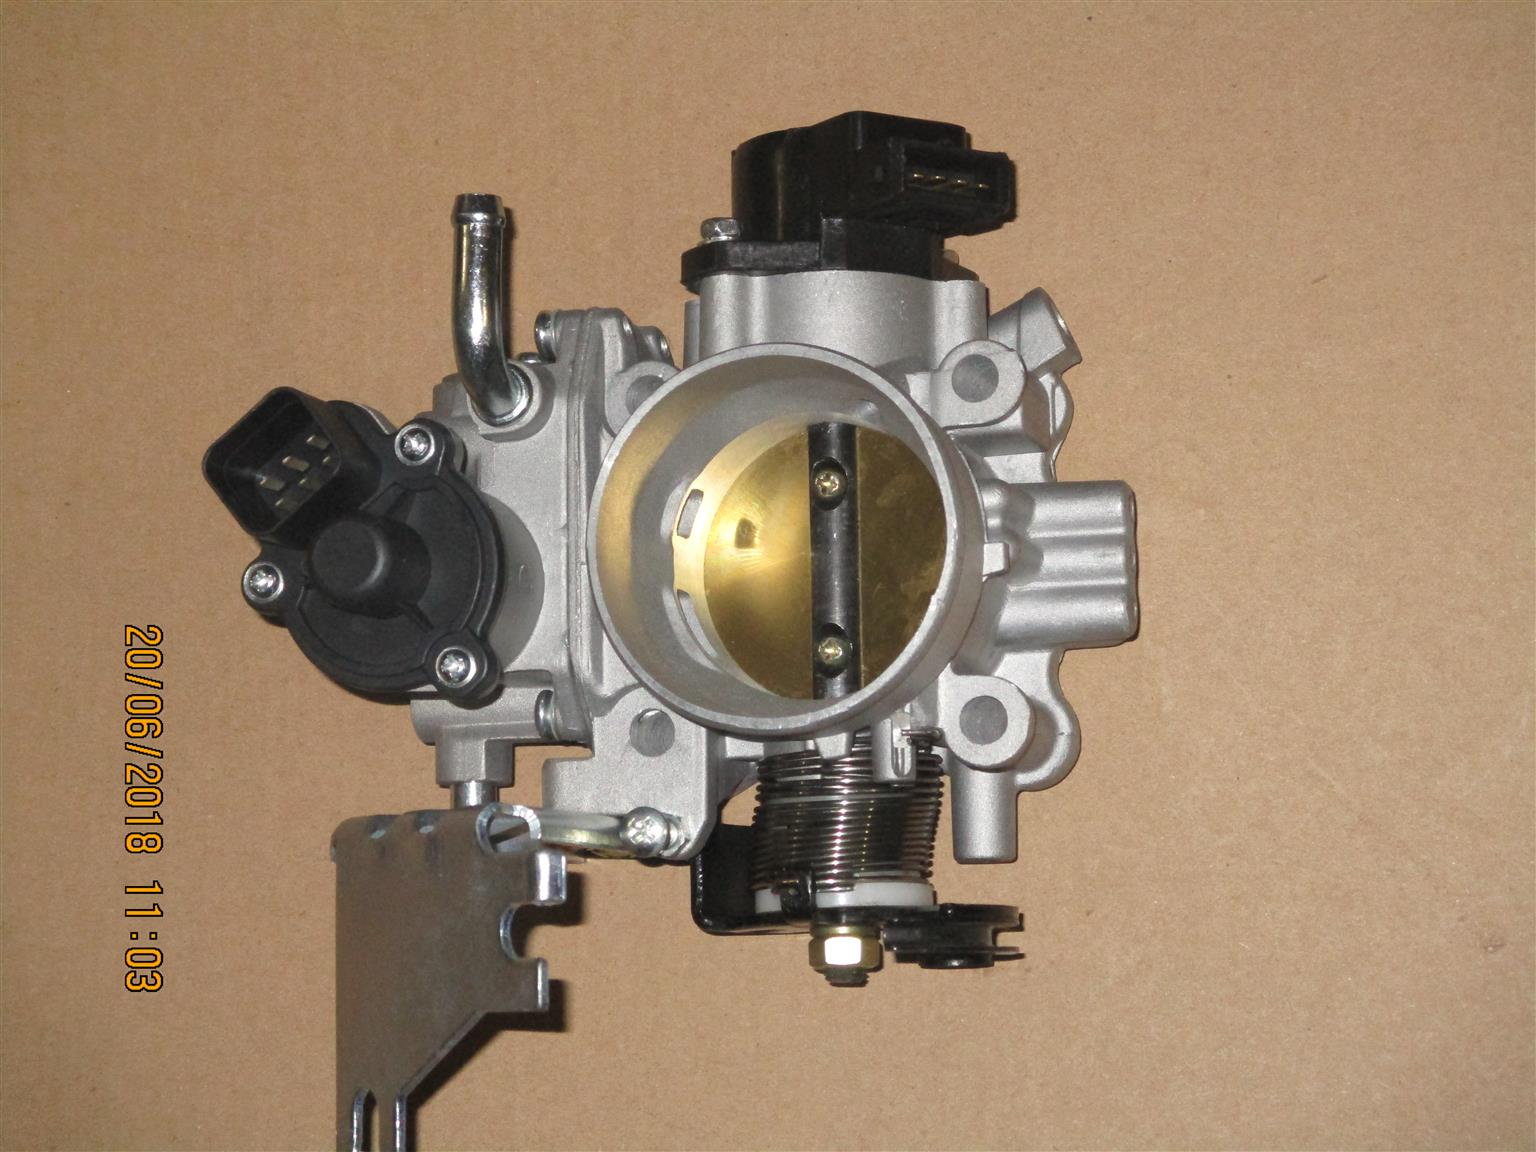 MITSUBISHI THROTTLE BODY FOR SALE